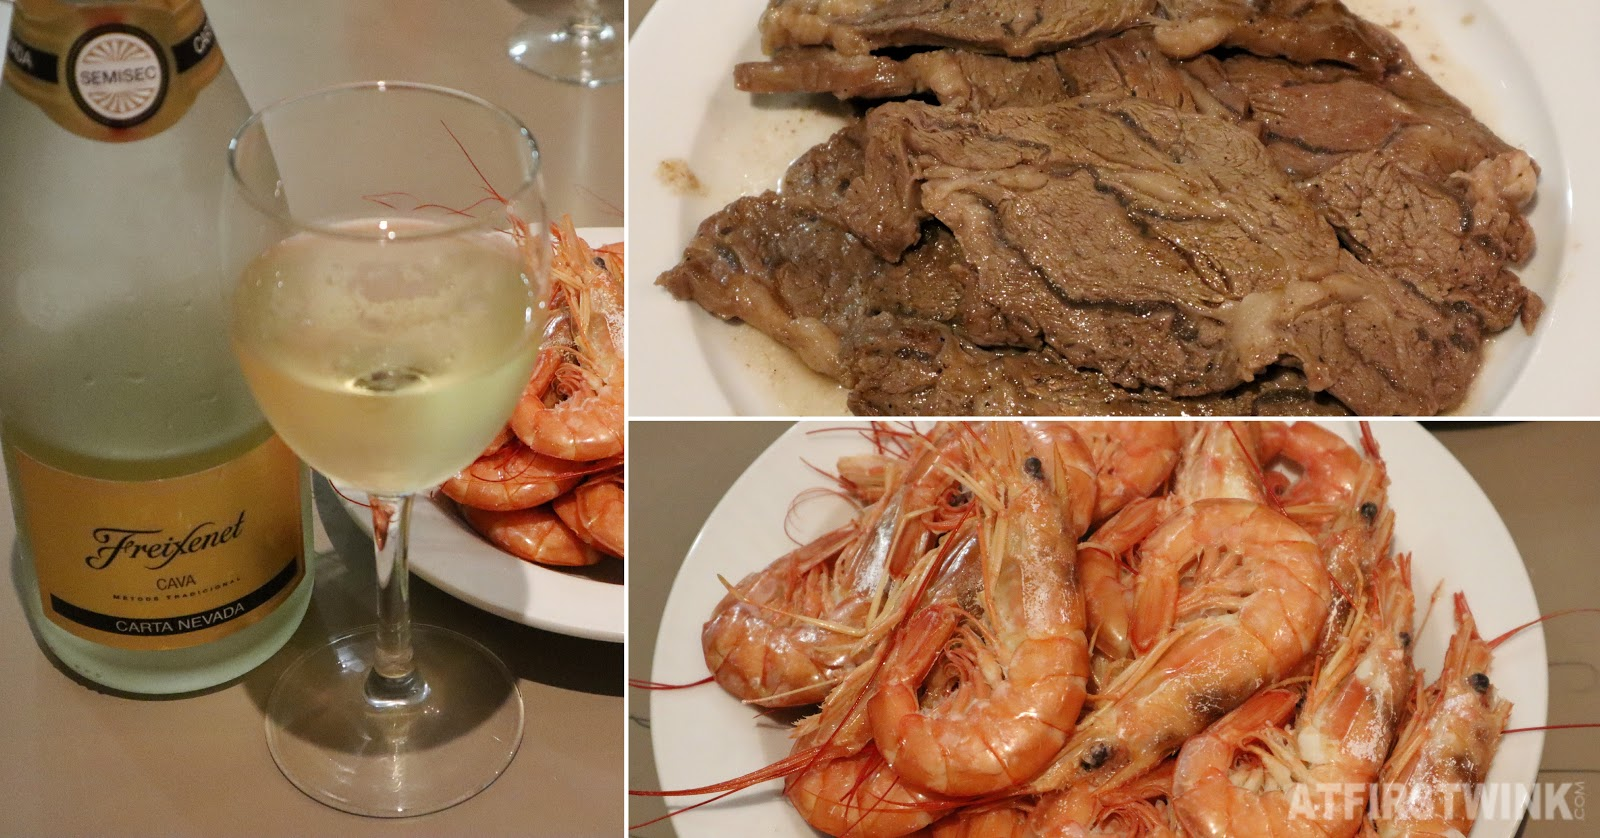 Freixenet cava carta Nevada beef shrimp